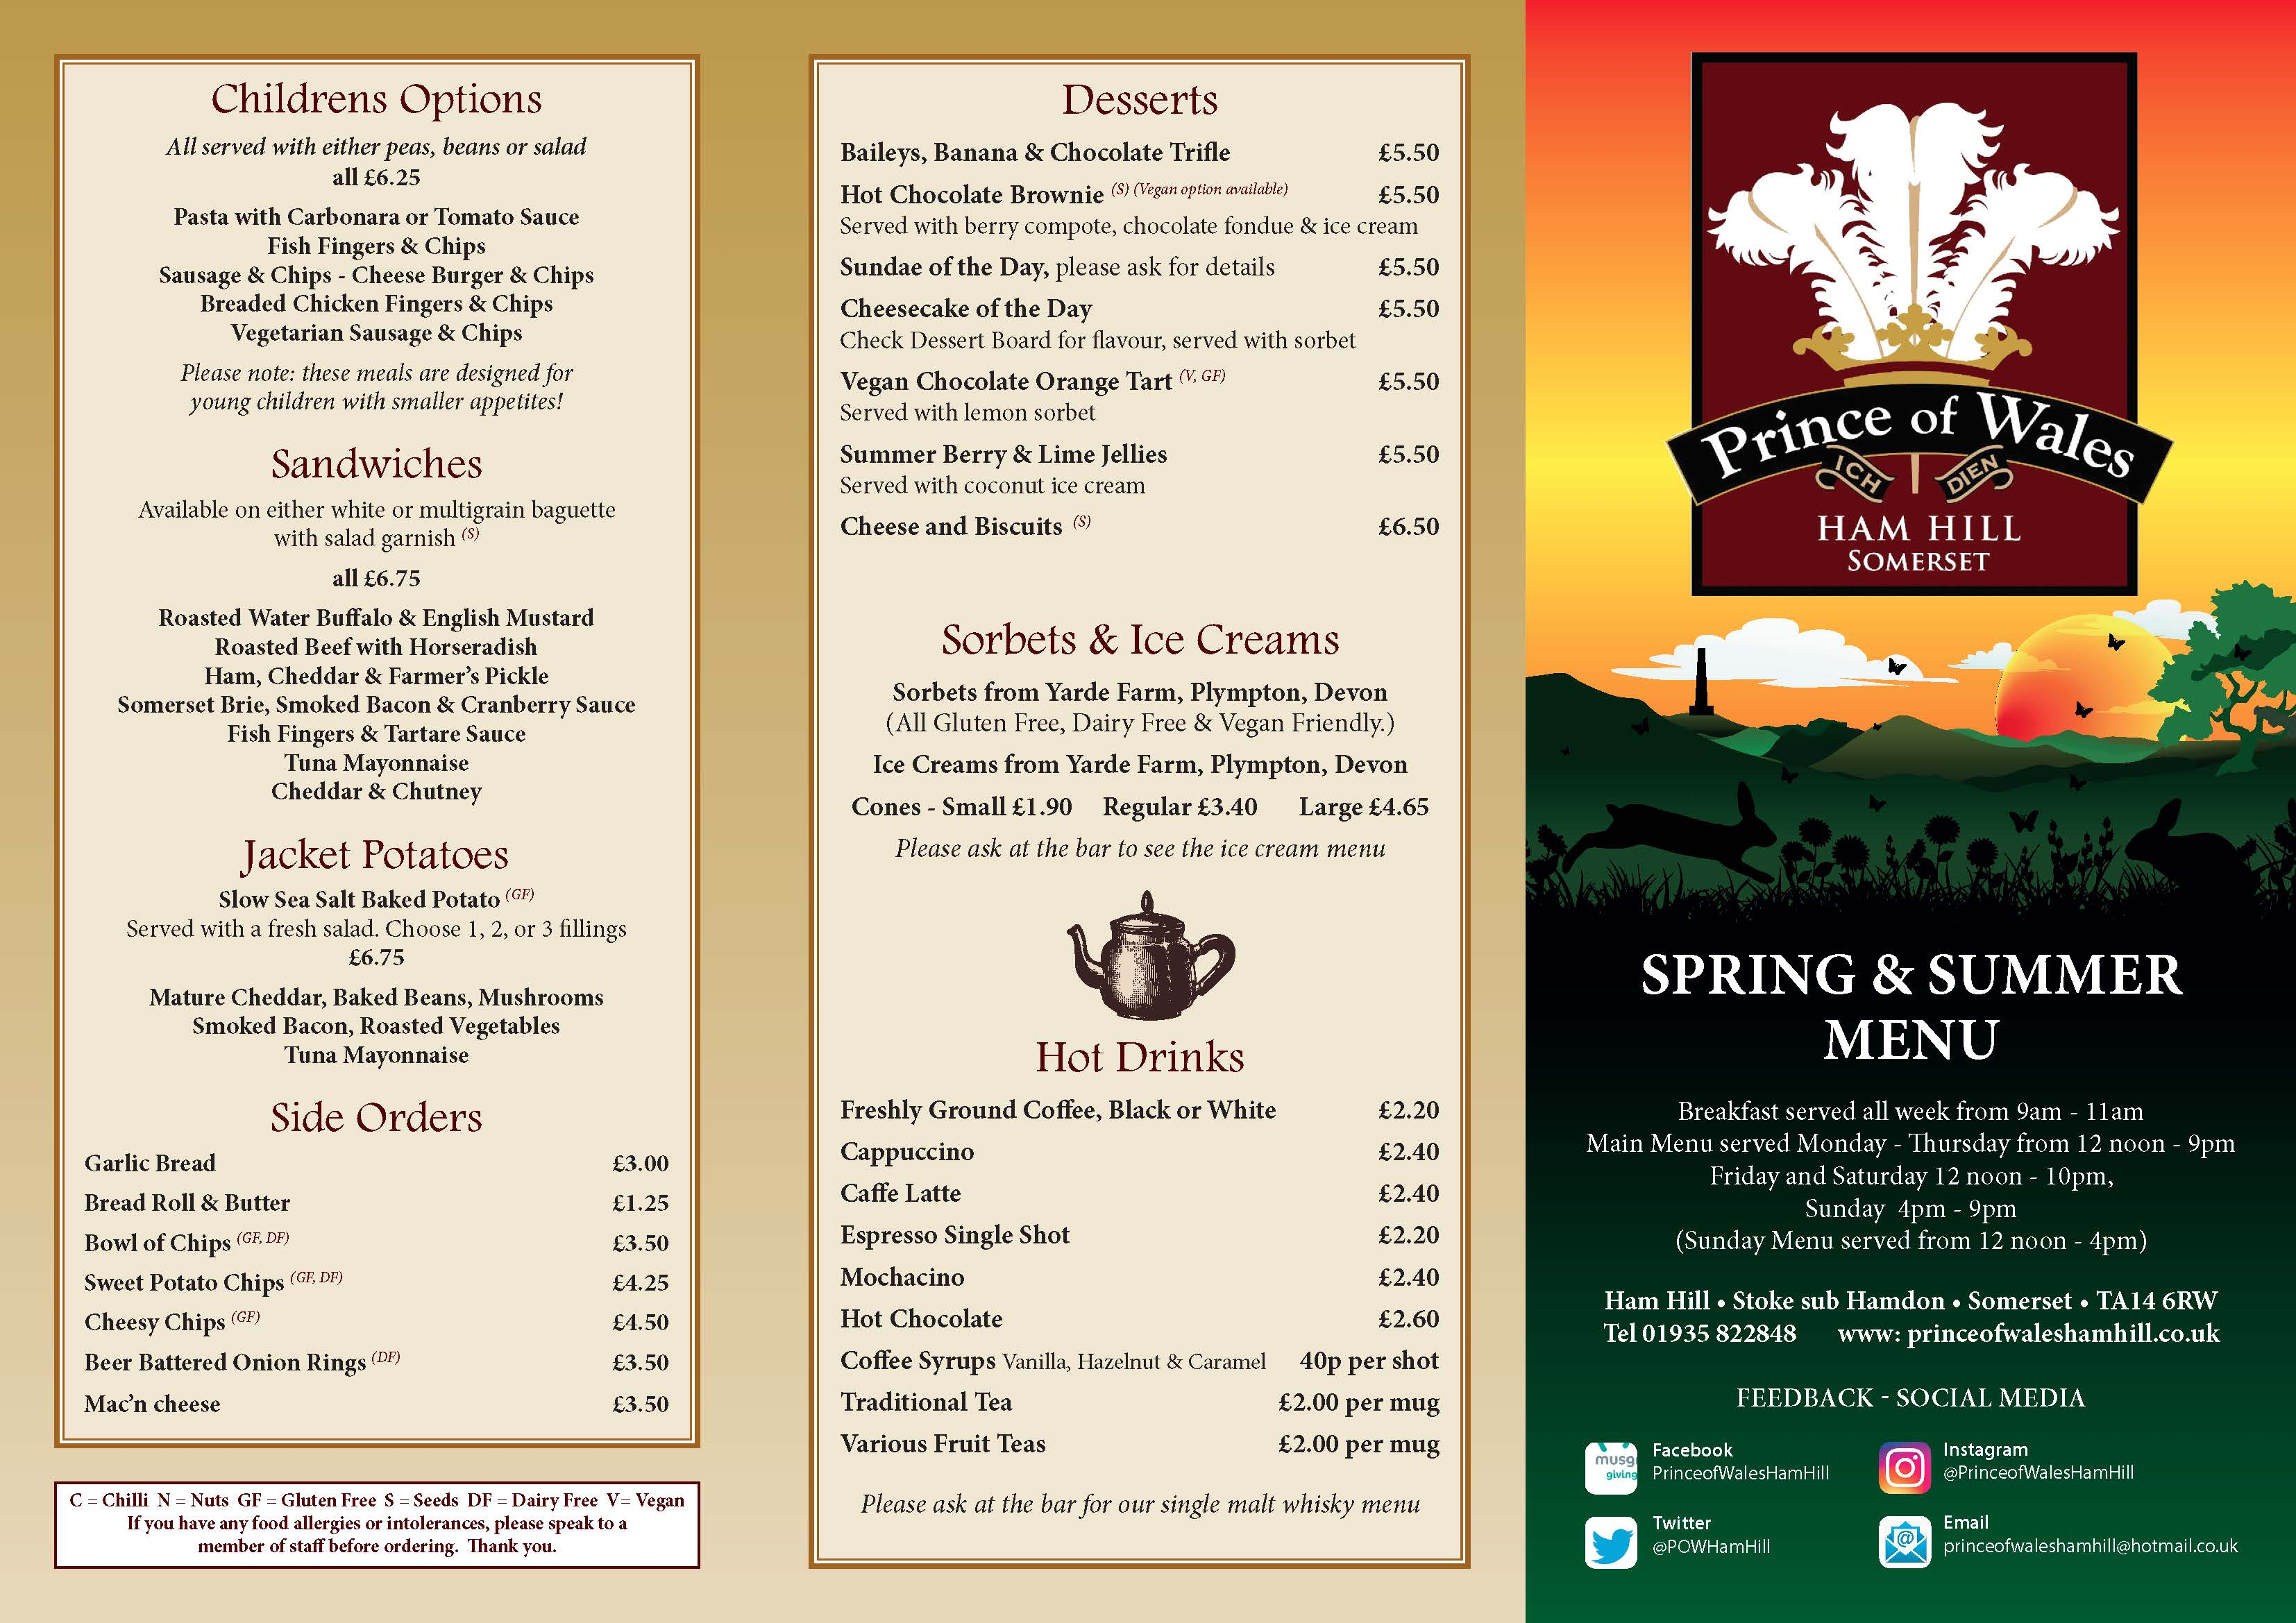 Spring and Summer Menu 2019 – Prince of Wales Ham Hill